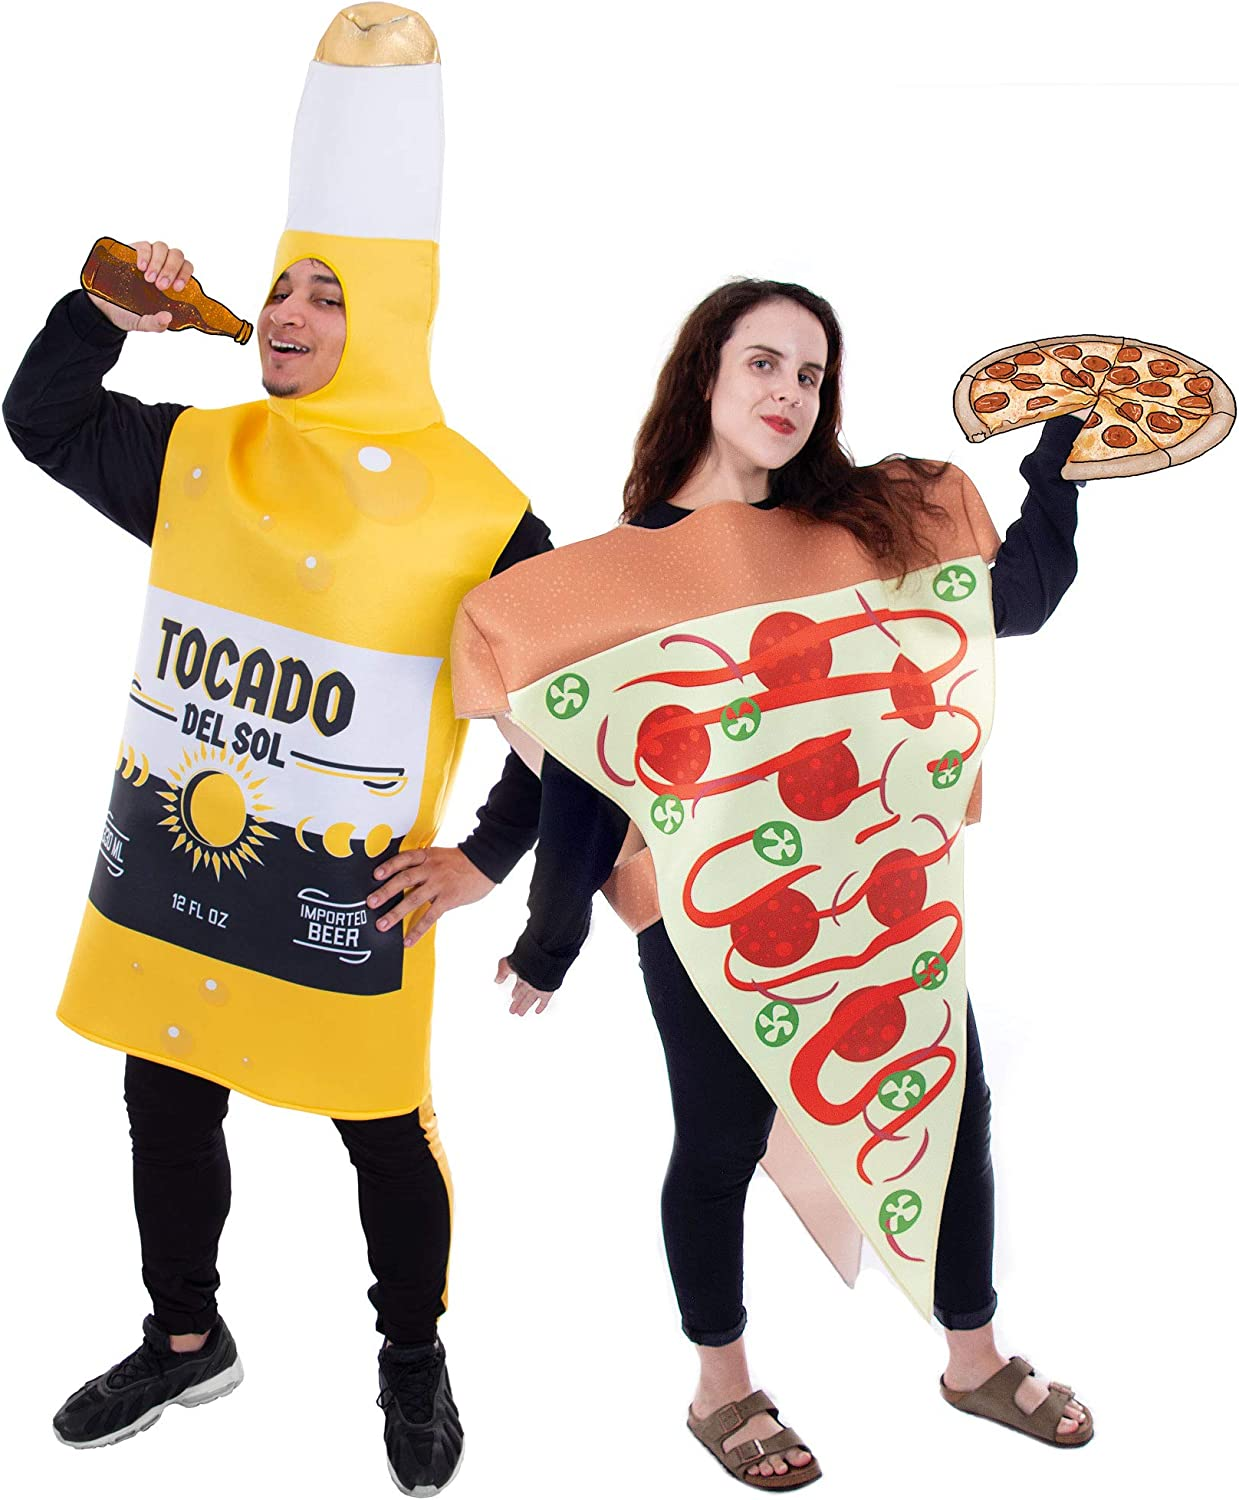 Pizza Costumes Adult  Funny Costumes For Halloween Food Party Role Play cloth